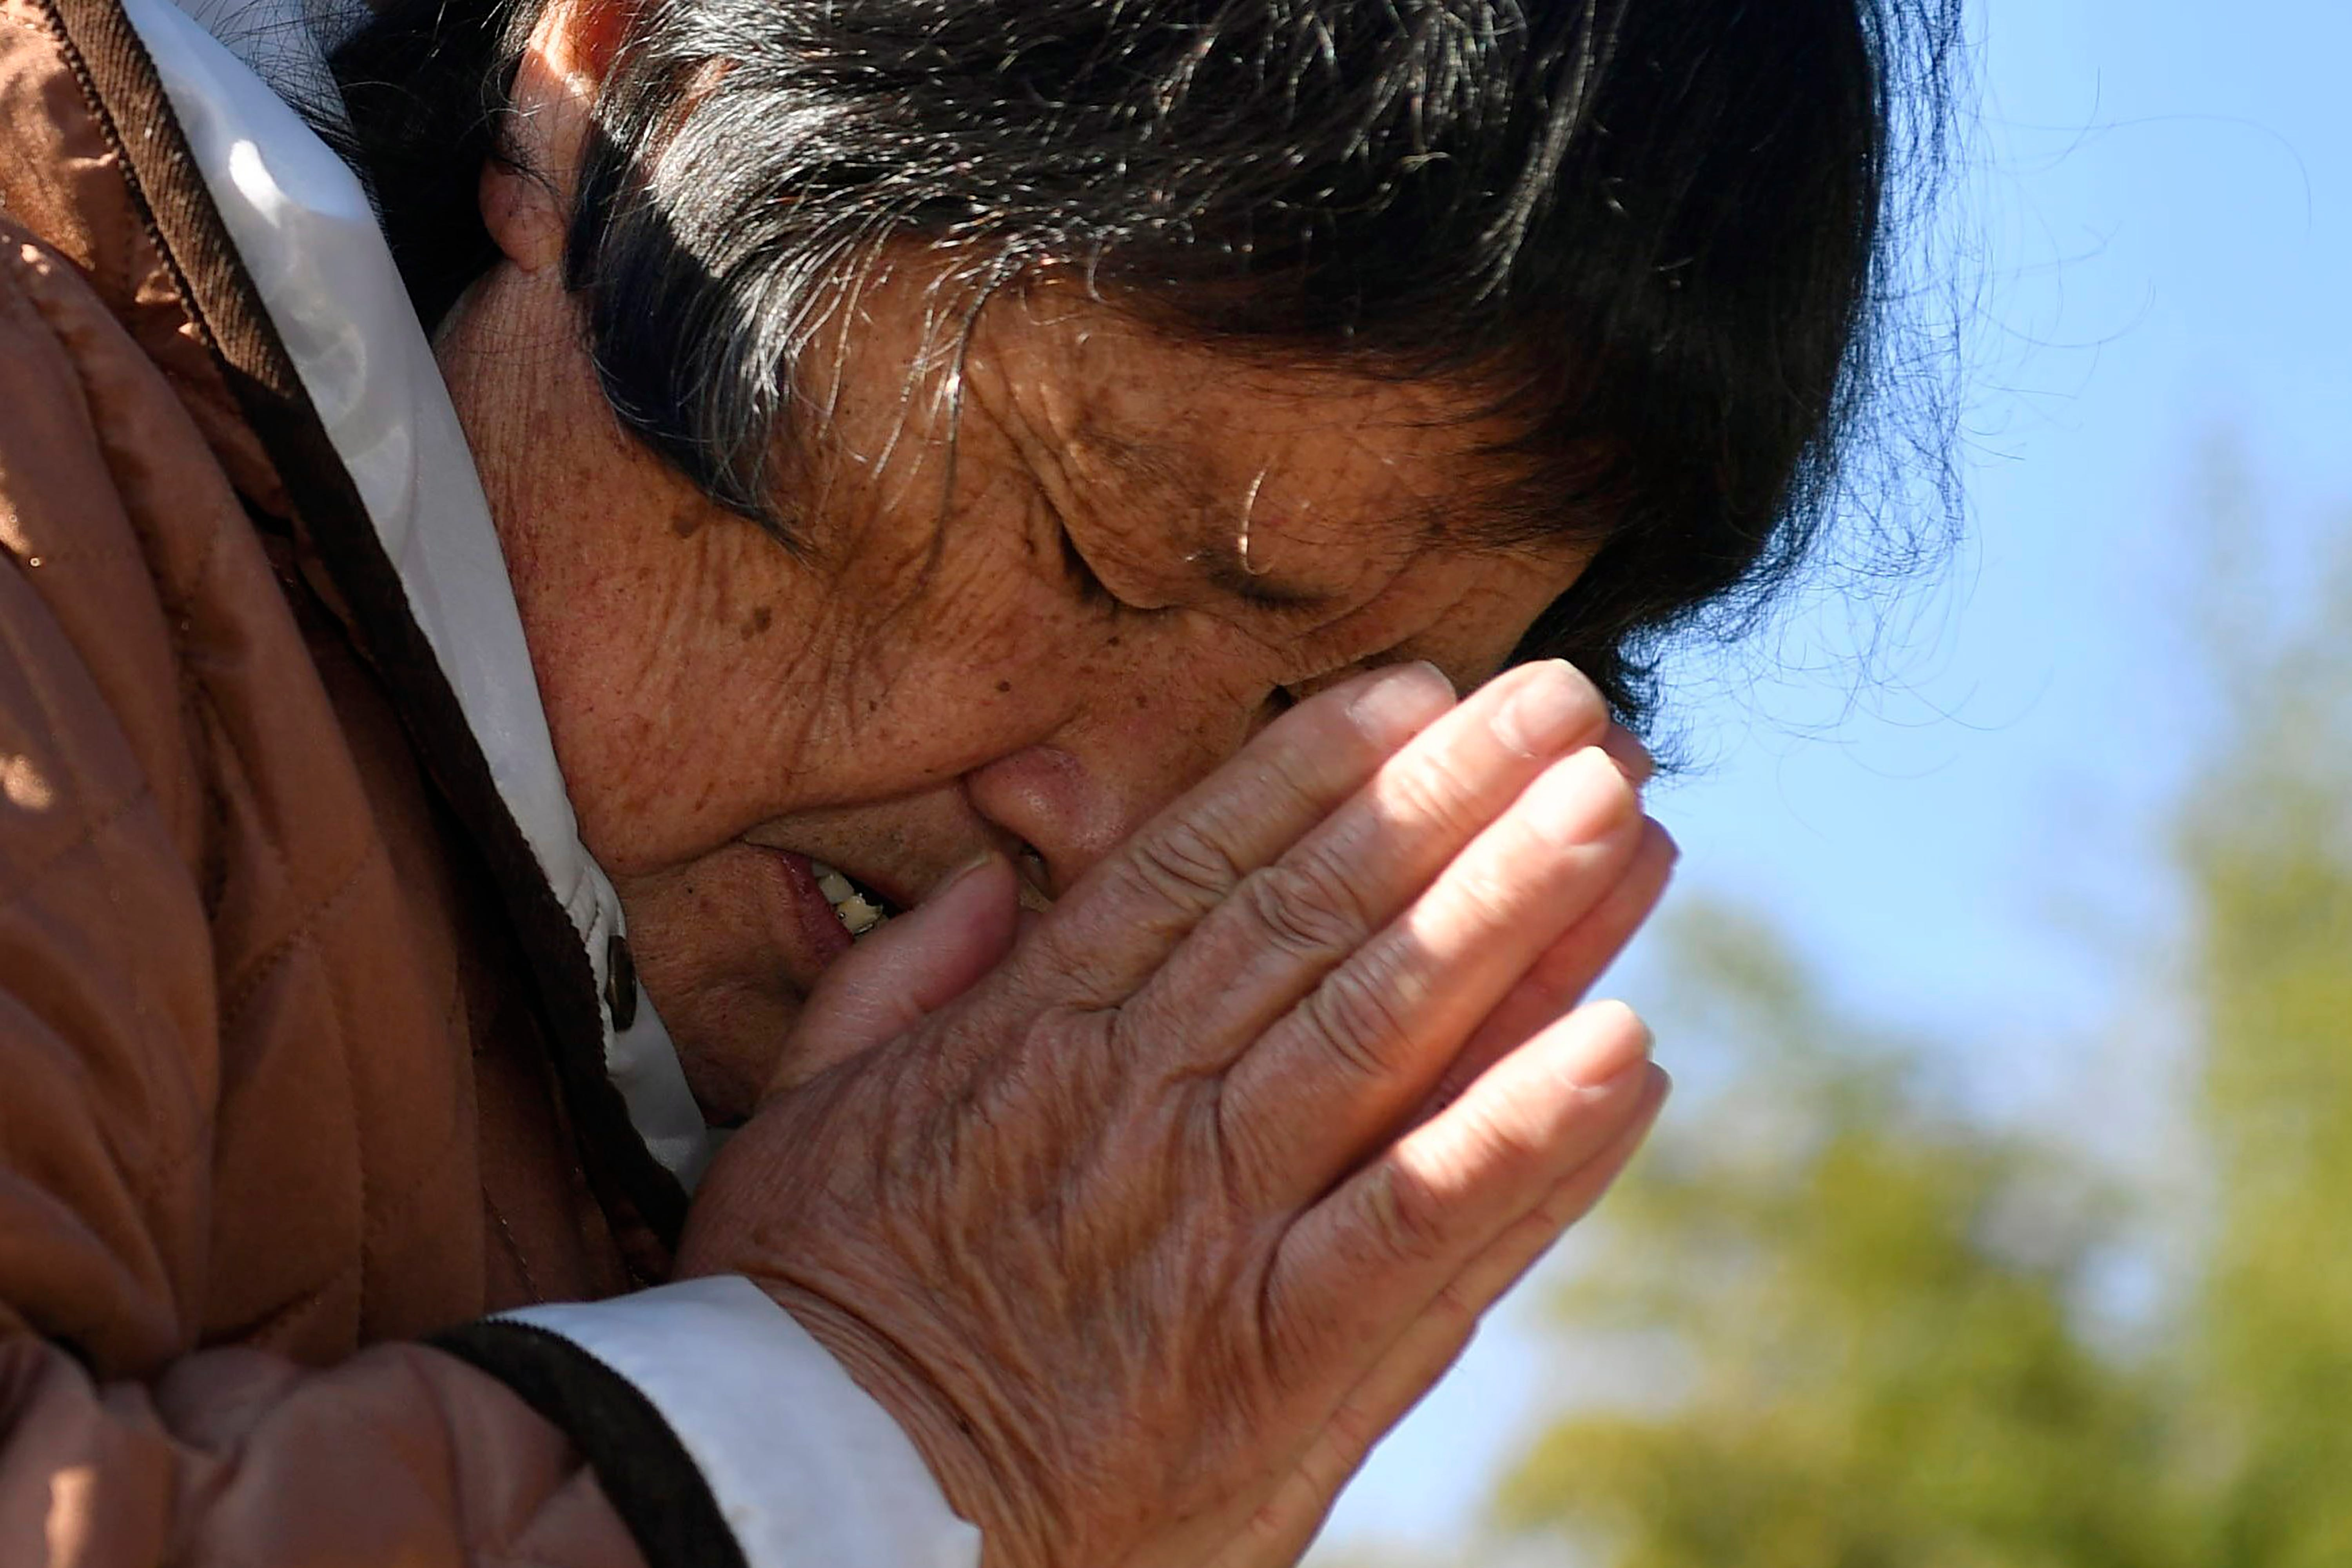 Japan marks 10th disaster anniversary but still recovering 2